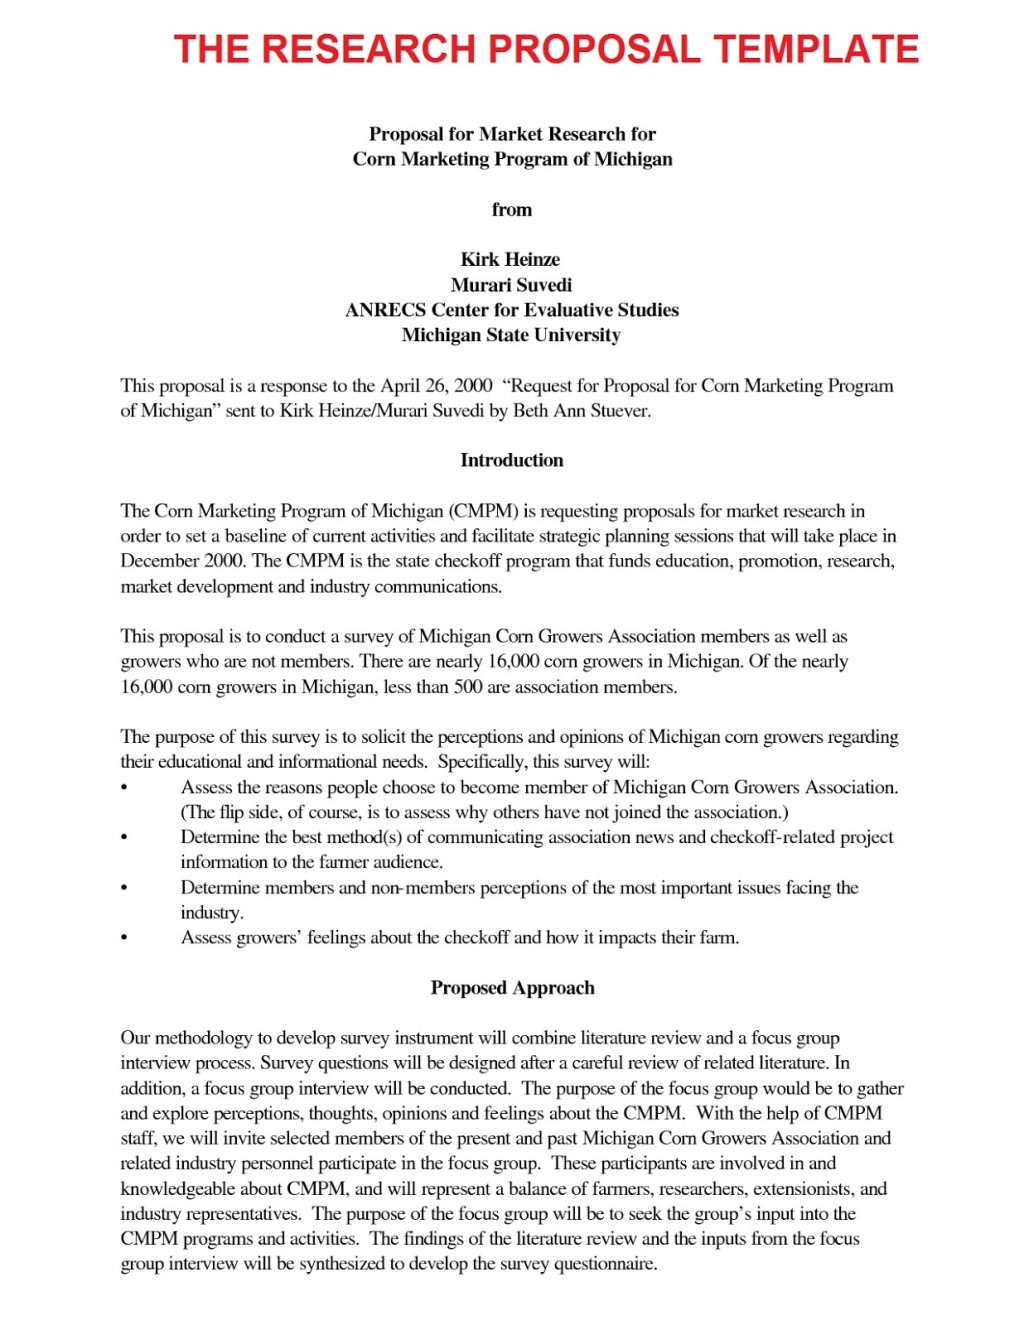 007 Research20proposal20template Research Paper Introduction Of Best A Apa For An Format Large